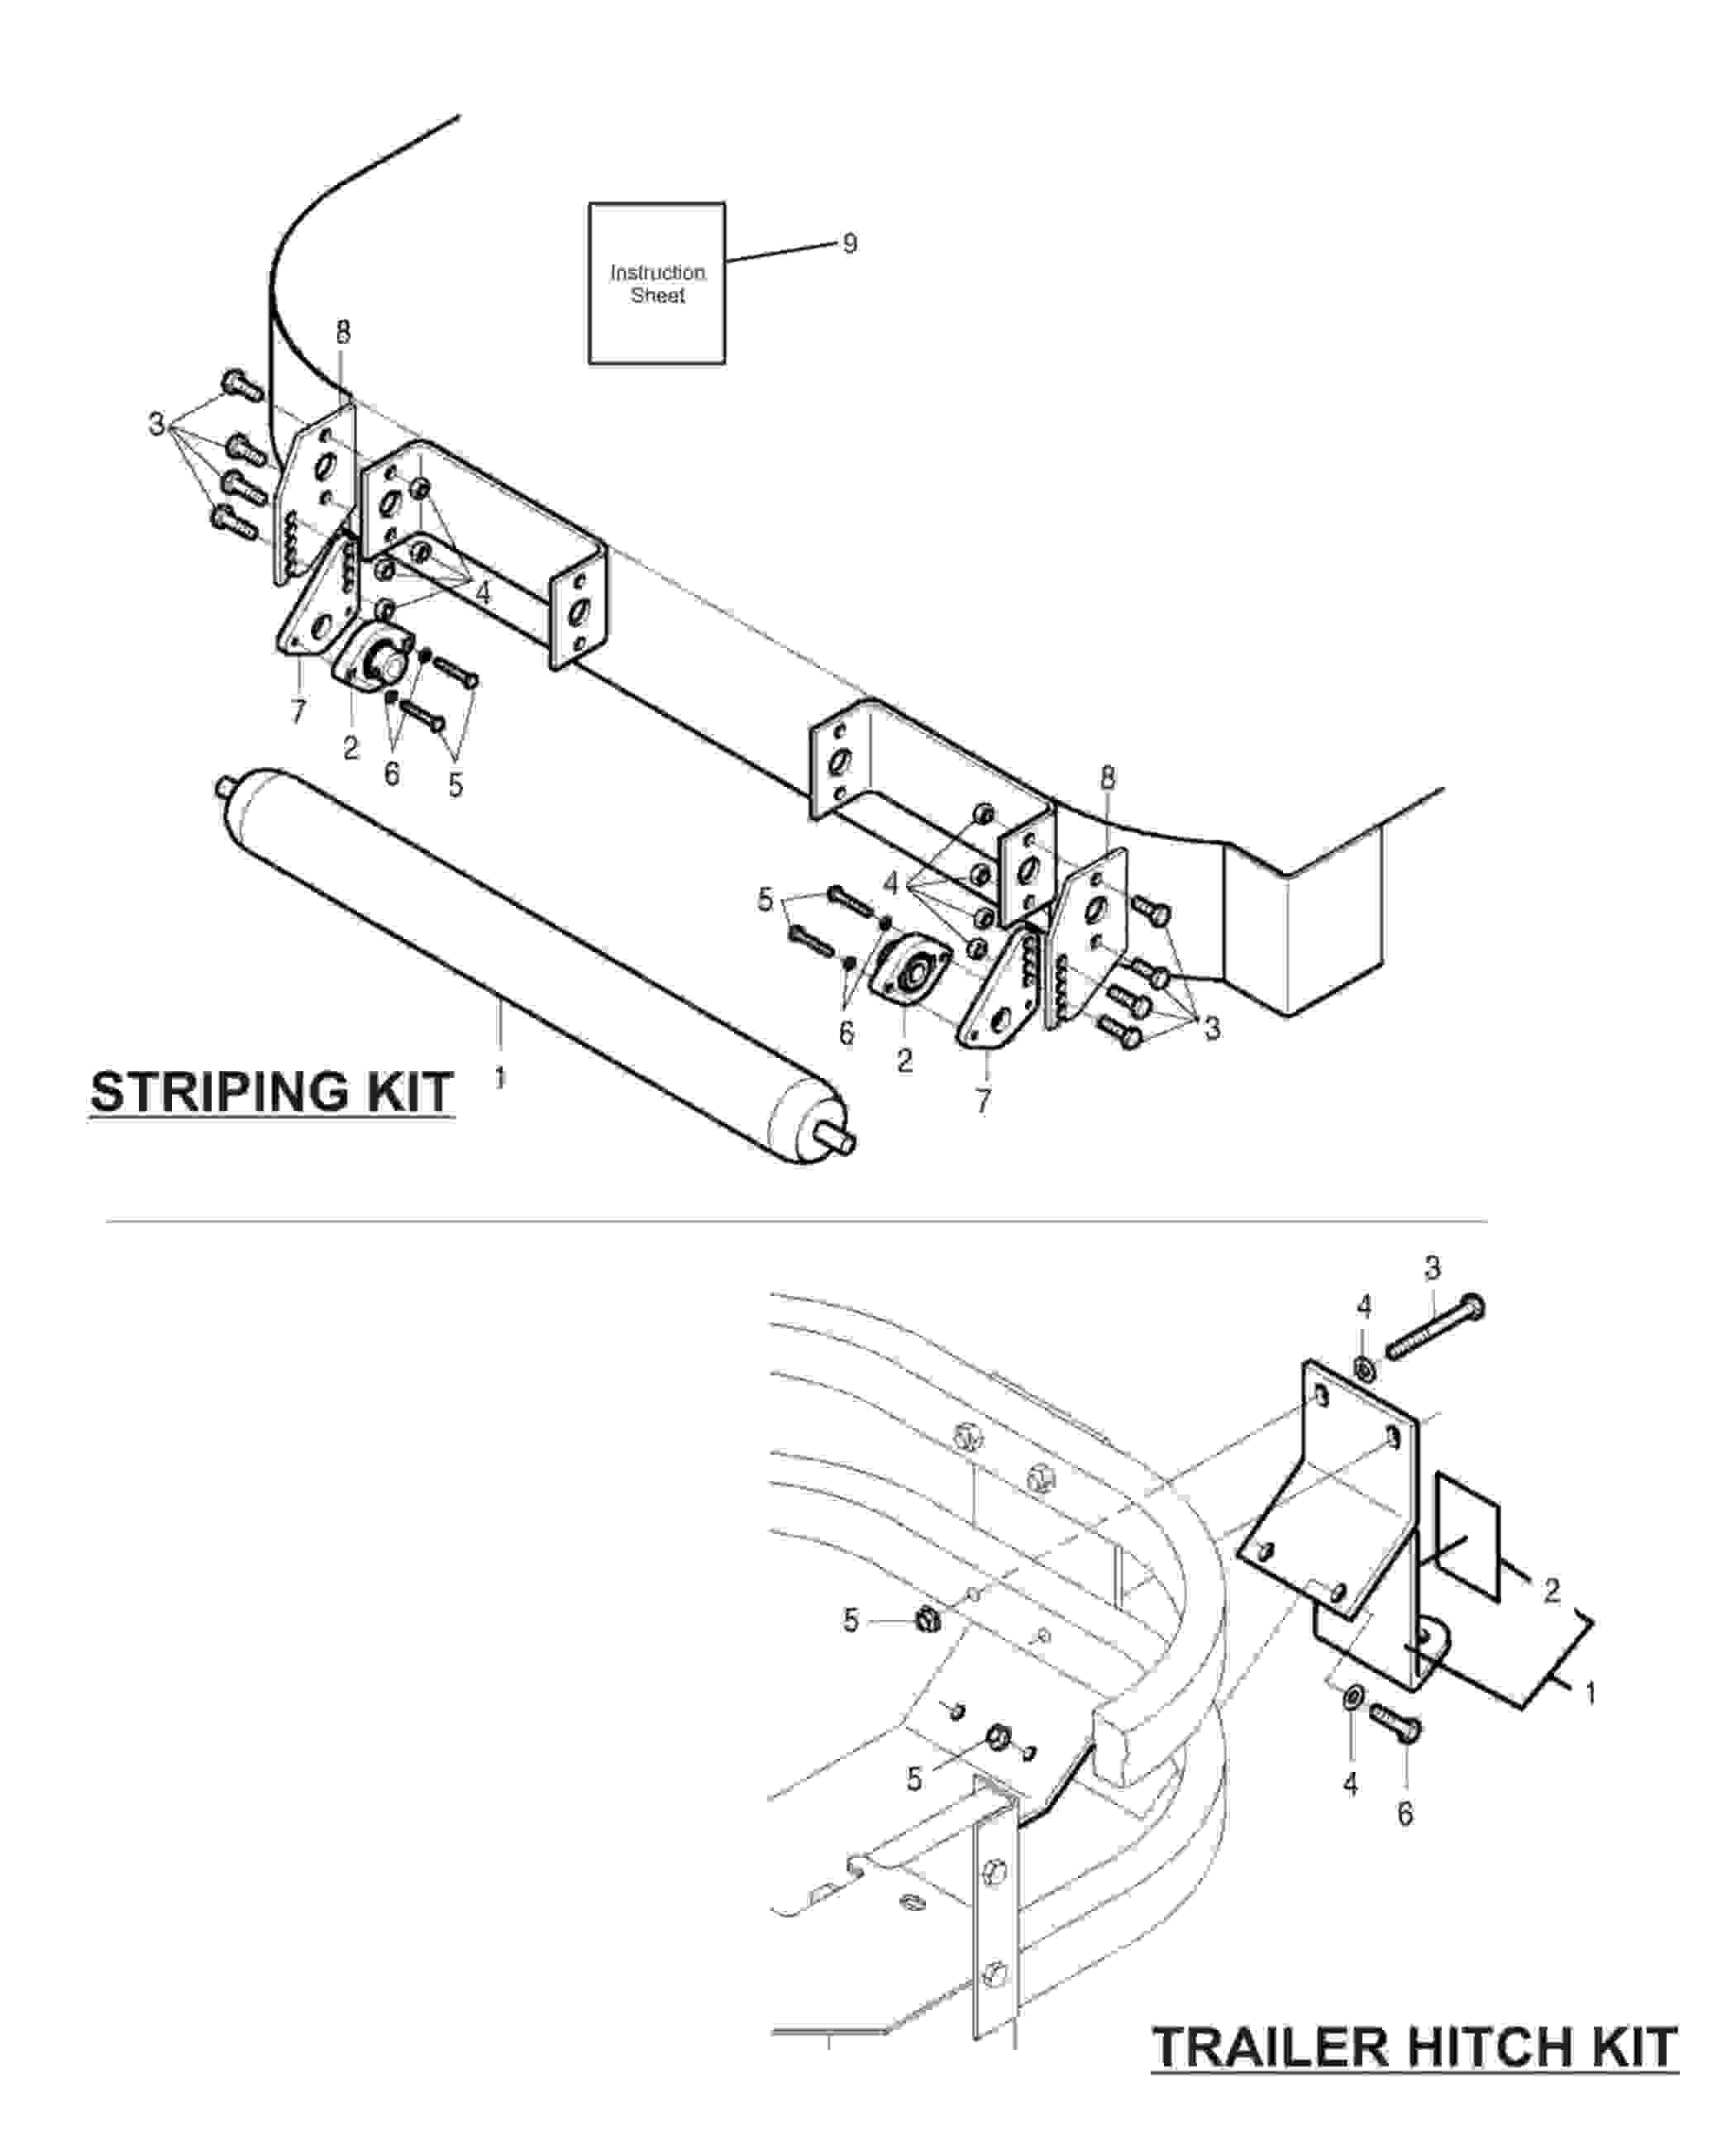 Parts Of A Trailer Hitch Diagram Servis Rhino Typhoon 2011 Zero Turn Mower Striping Kit and Trailer Of Parts Of A Trailer Hitch Diagram